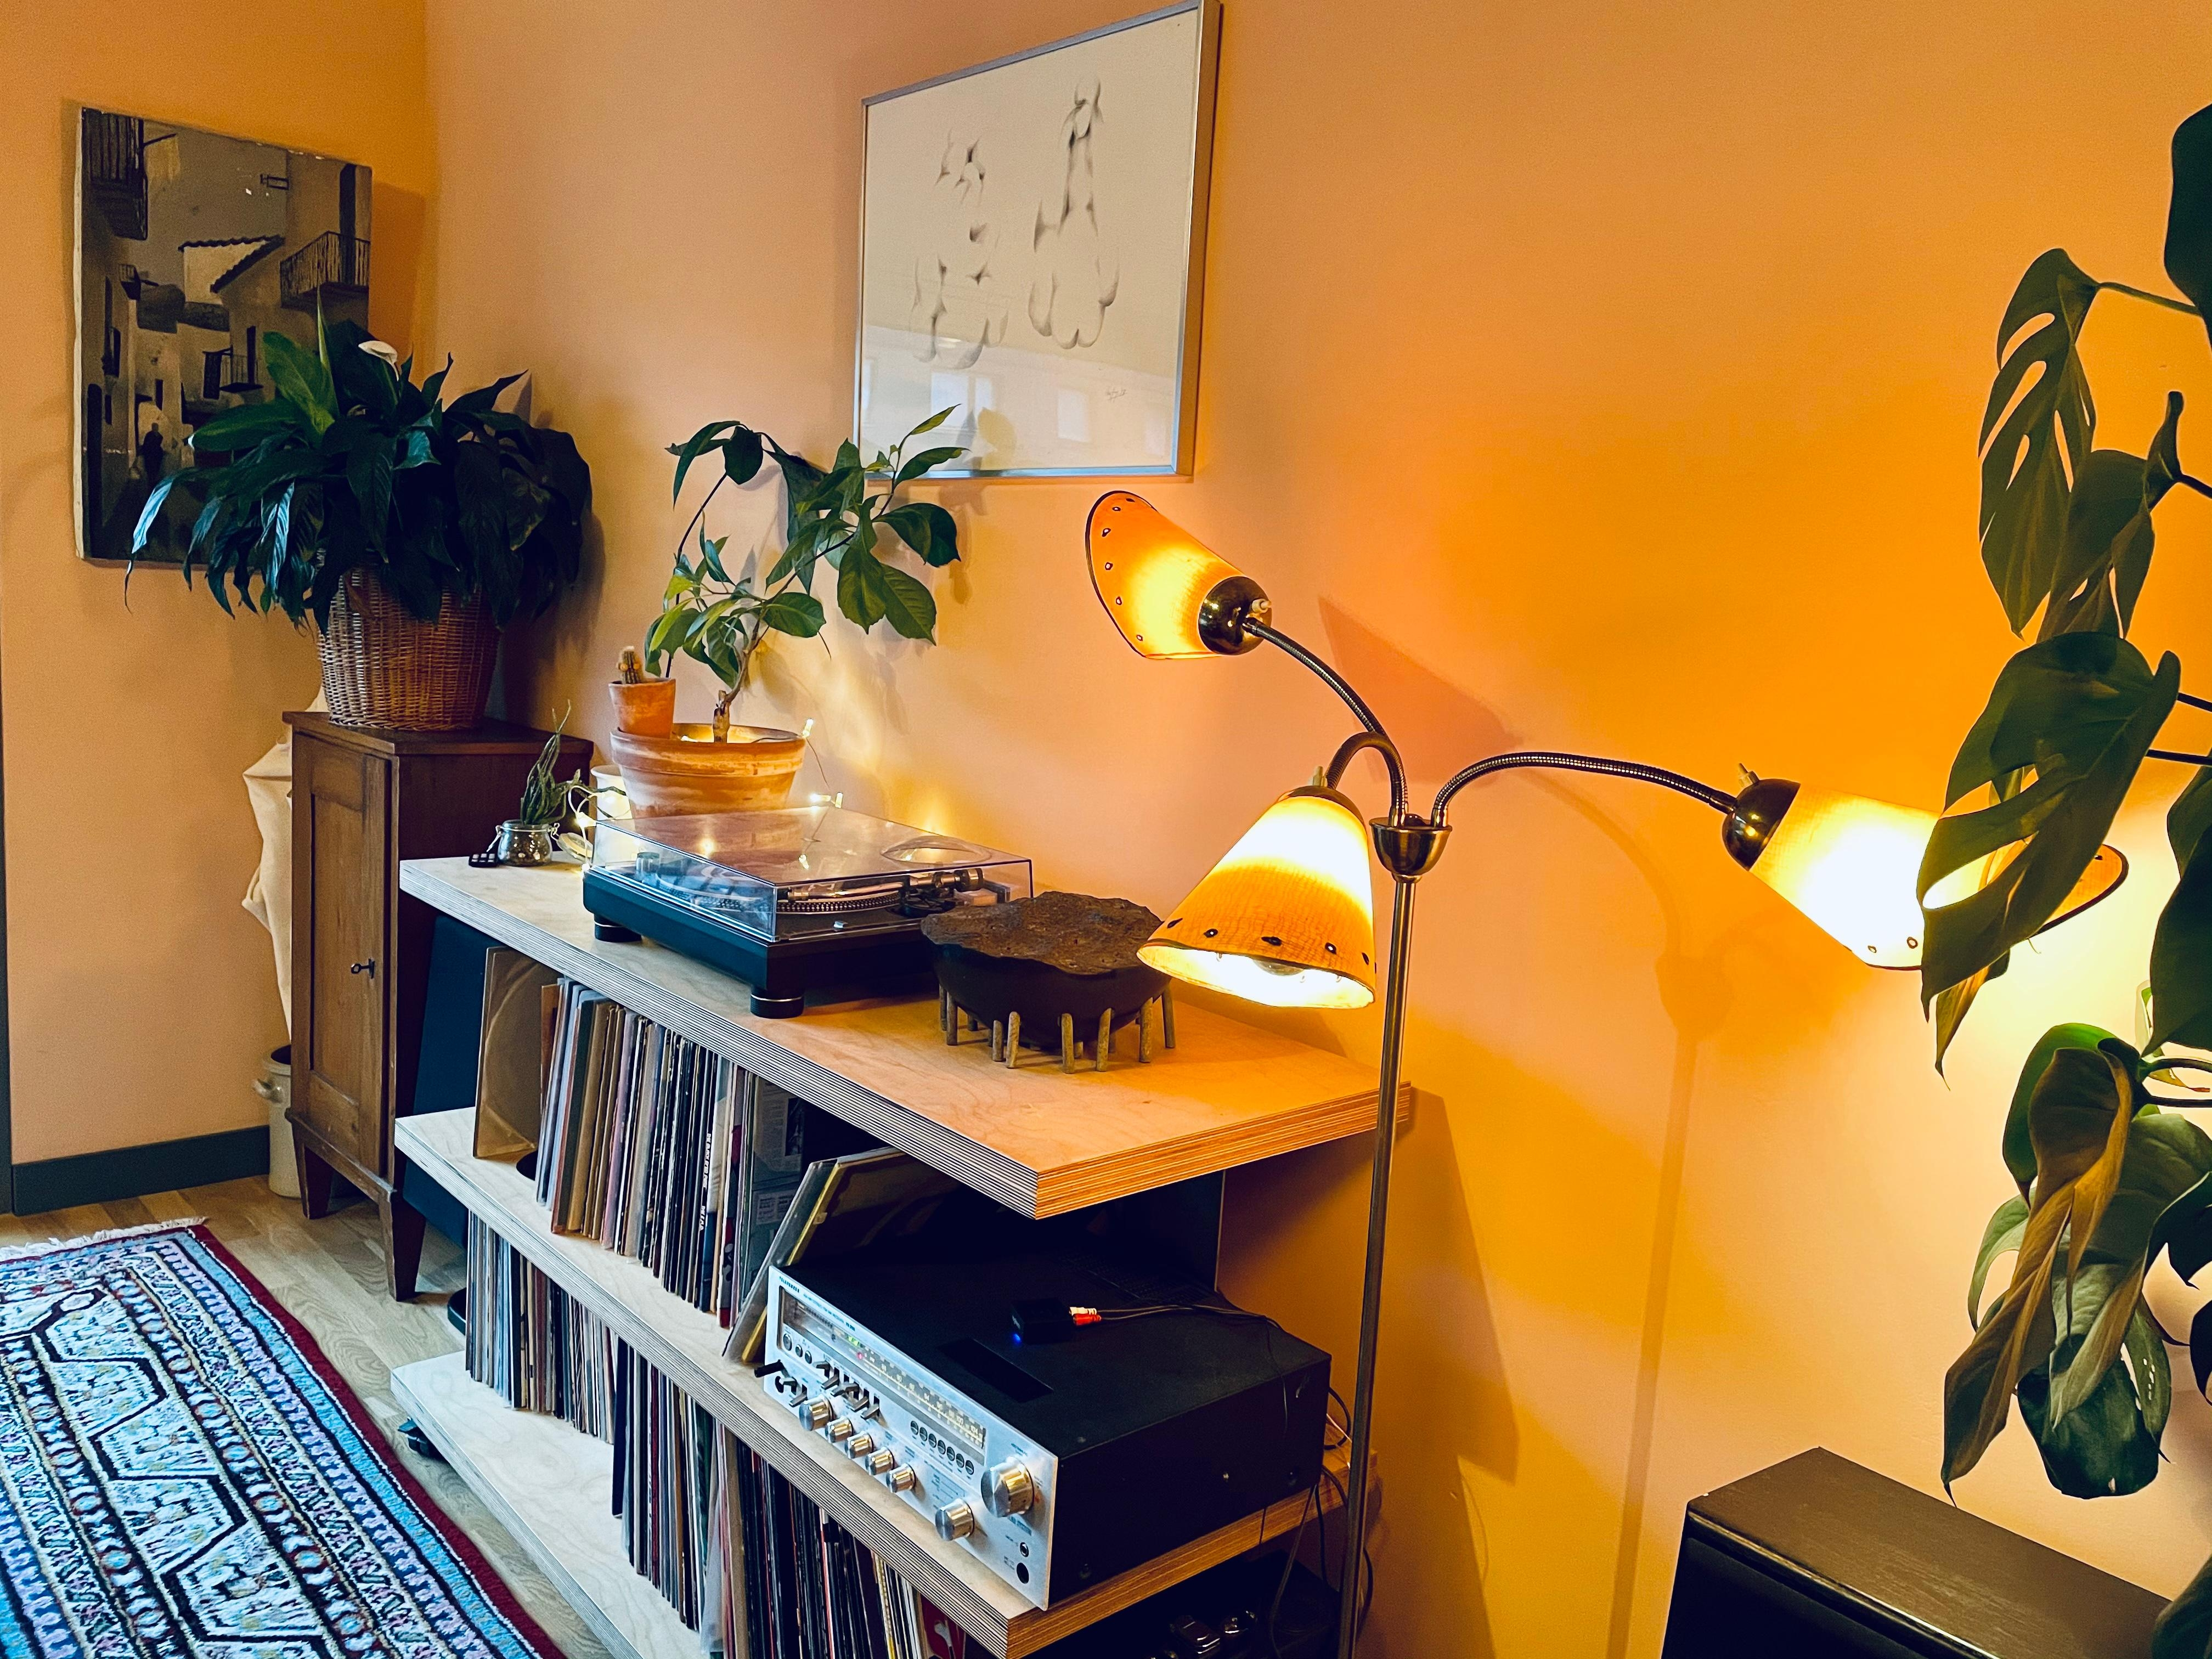 #vinyl #baobab #monstera #urbanjungle #livingroom #lescouleurs #lecorbusier